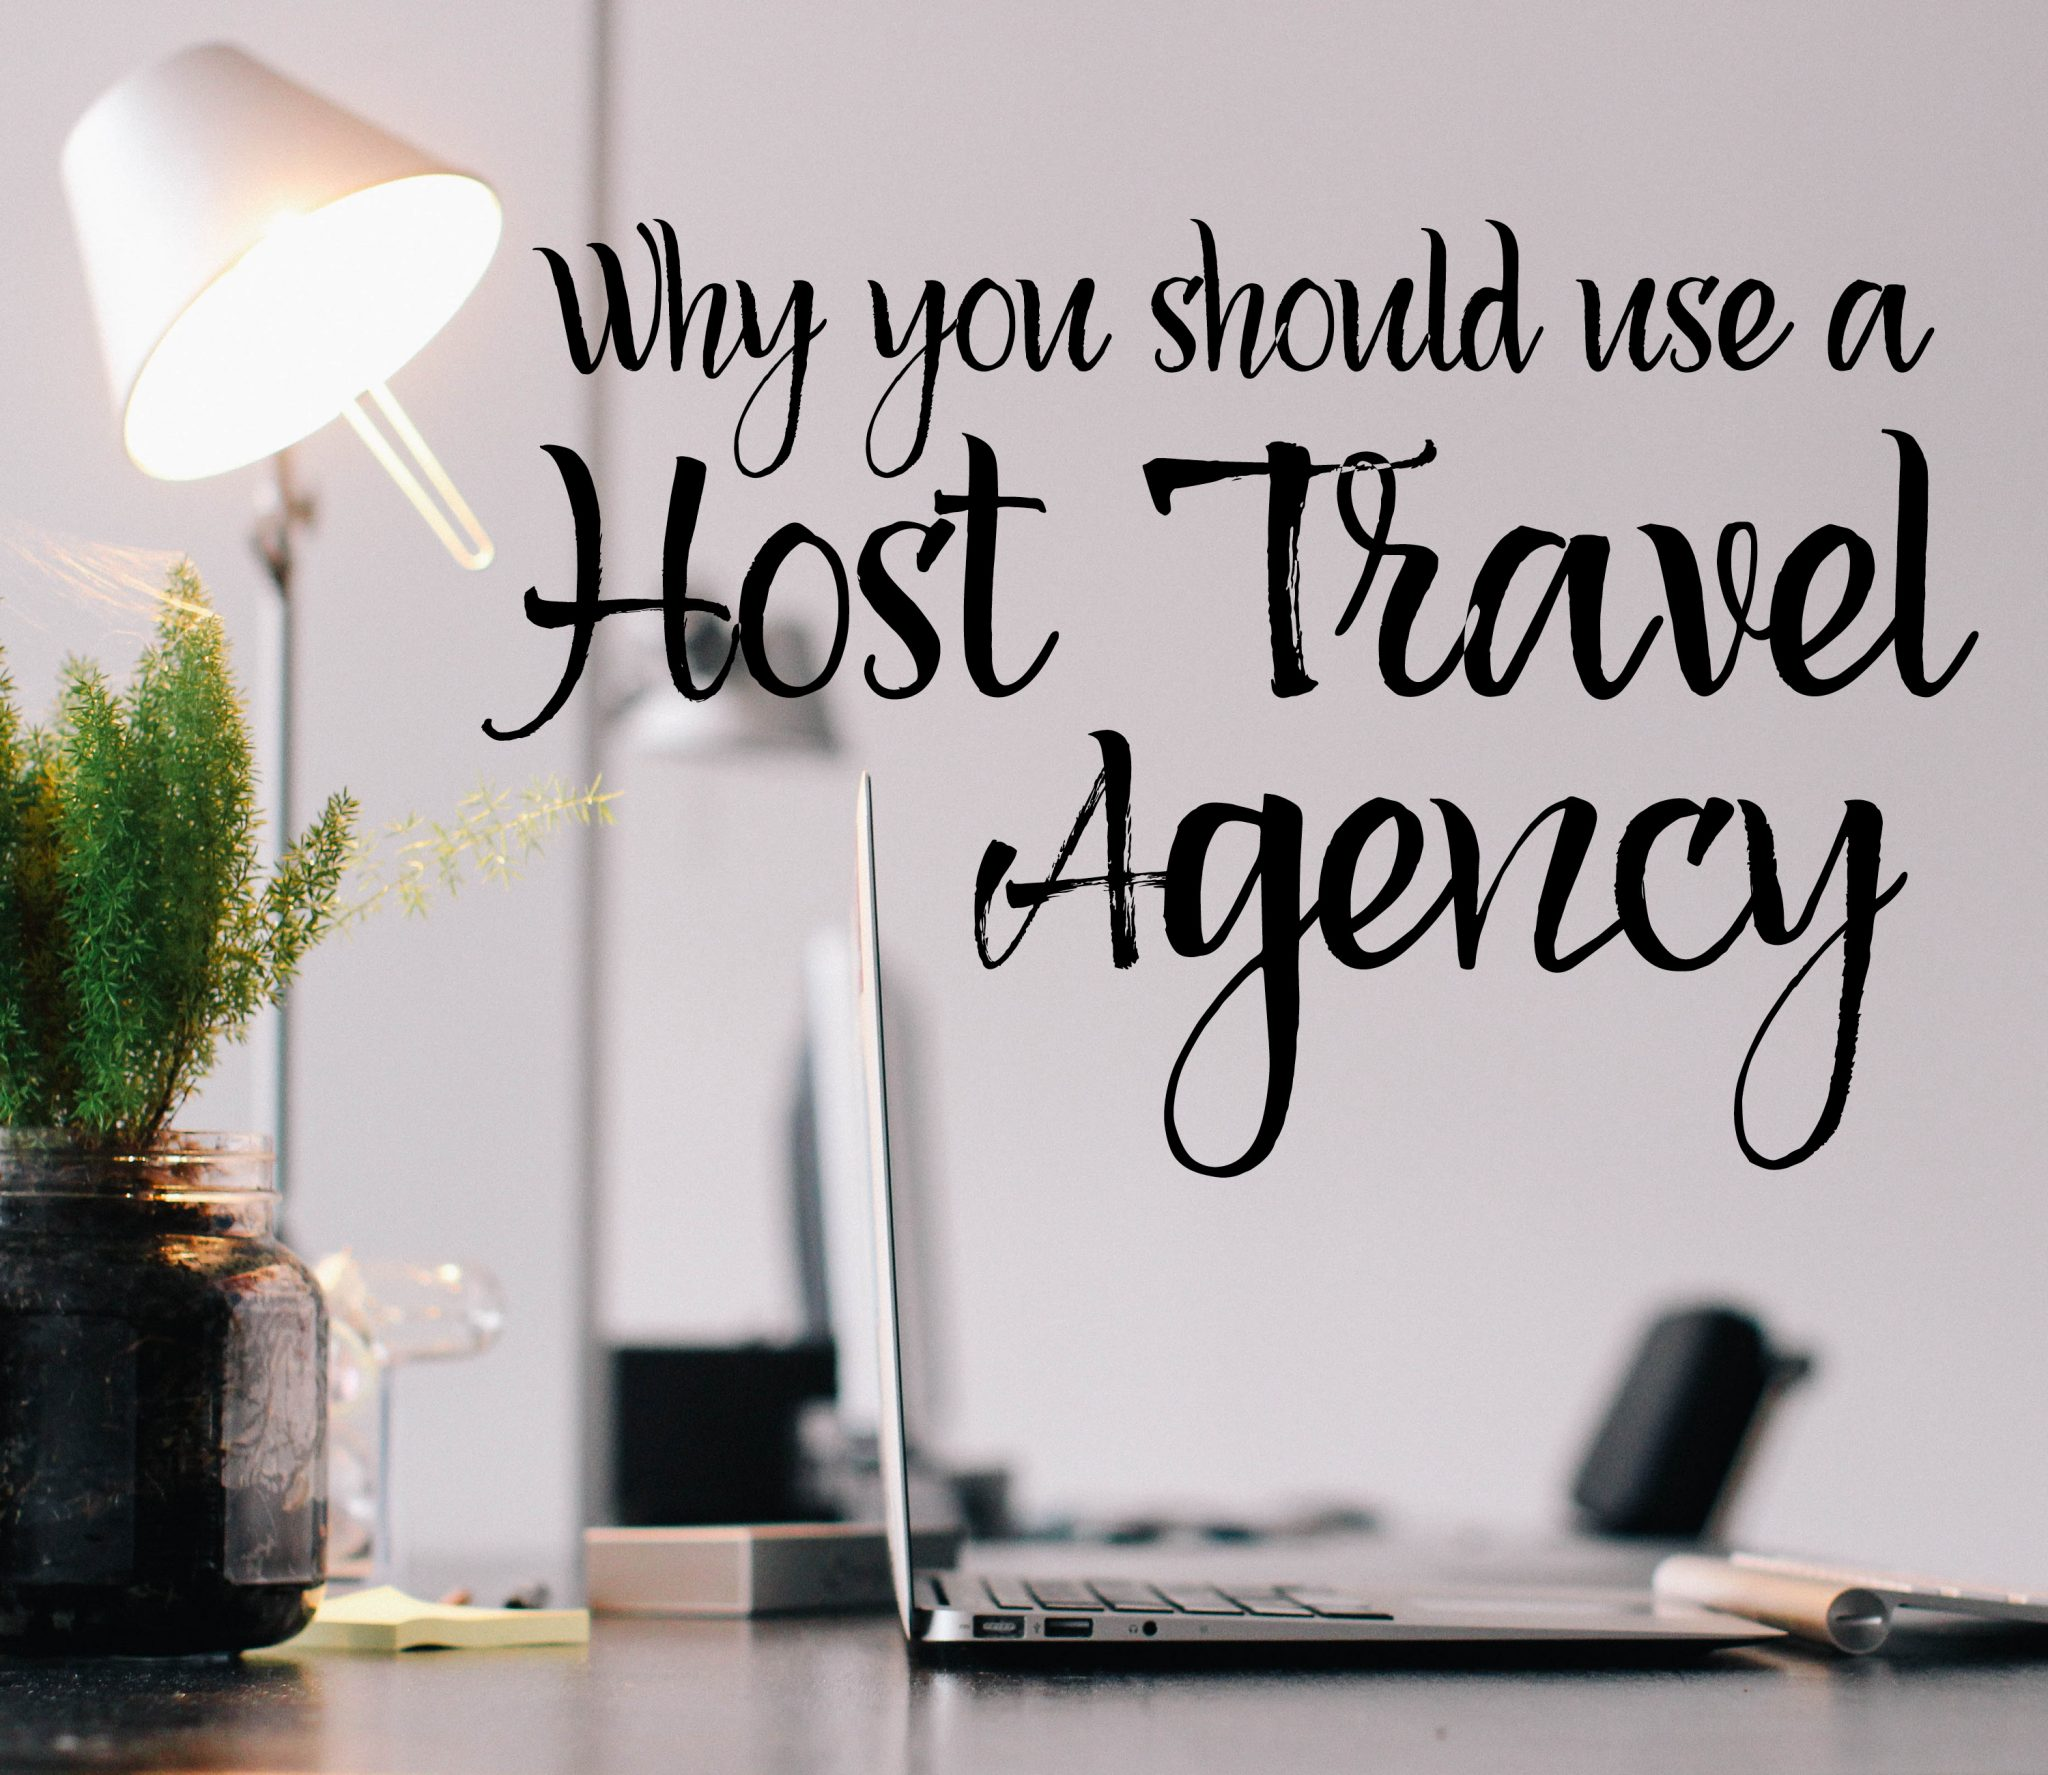 Travel Agents Host Agency: Why Use A Host Travel Agency